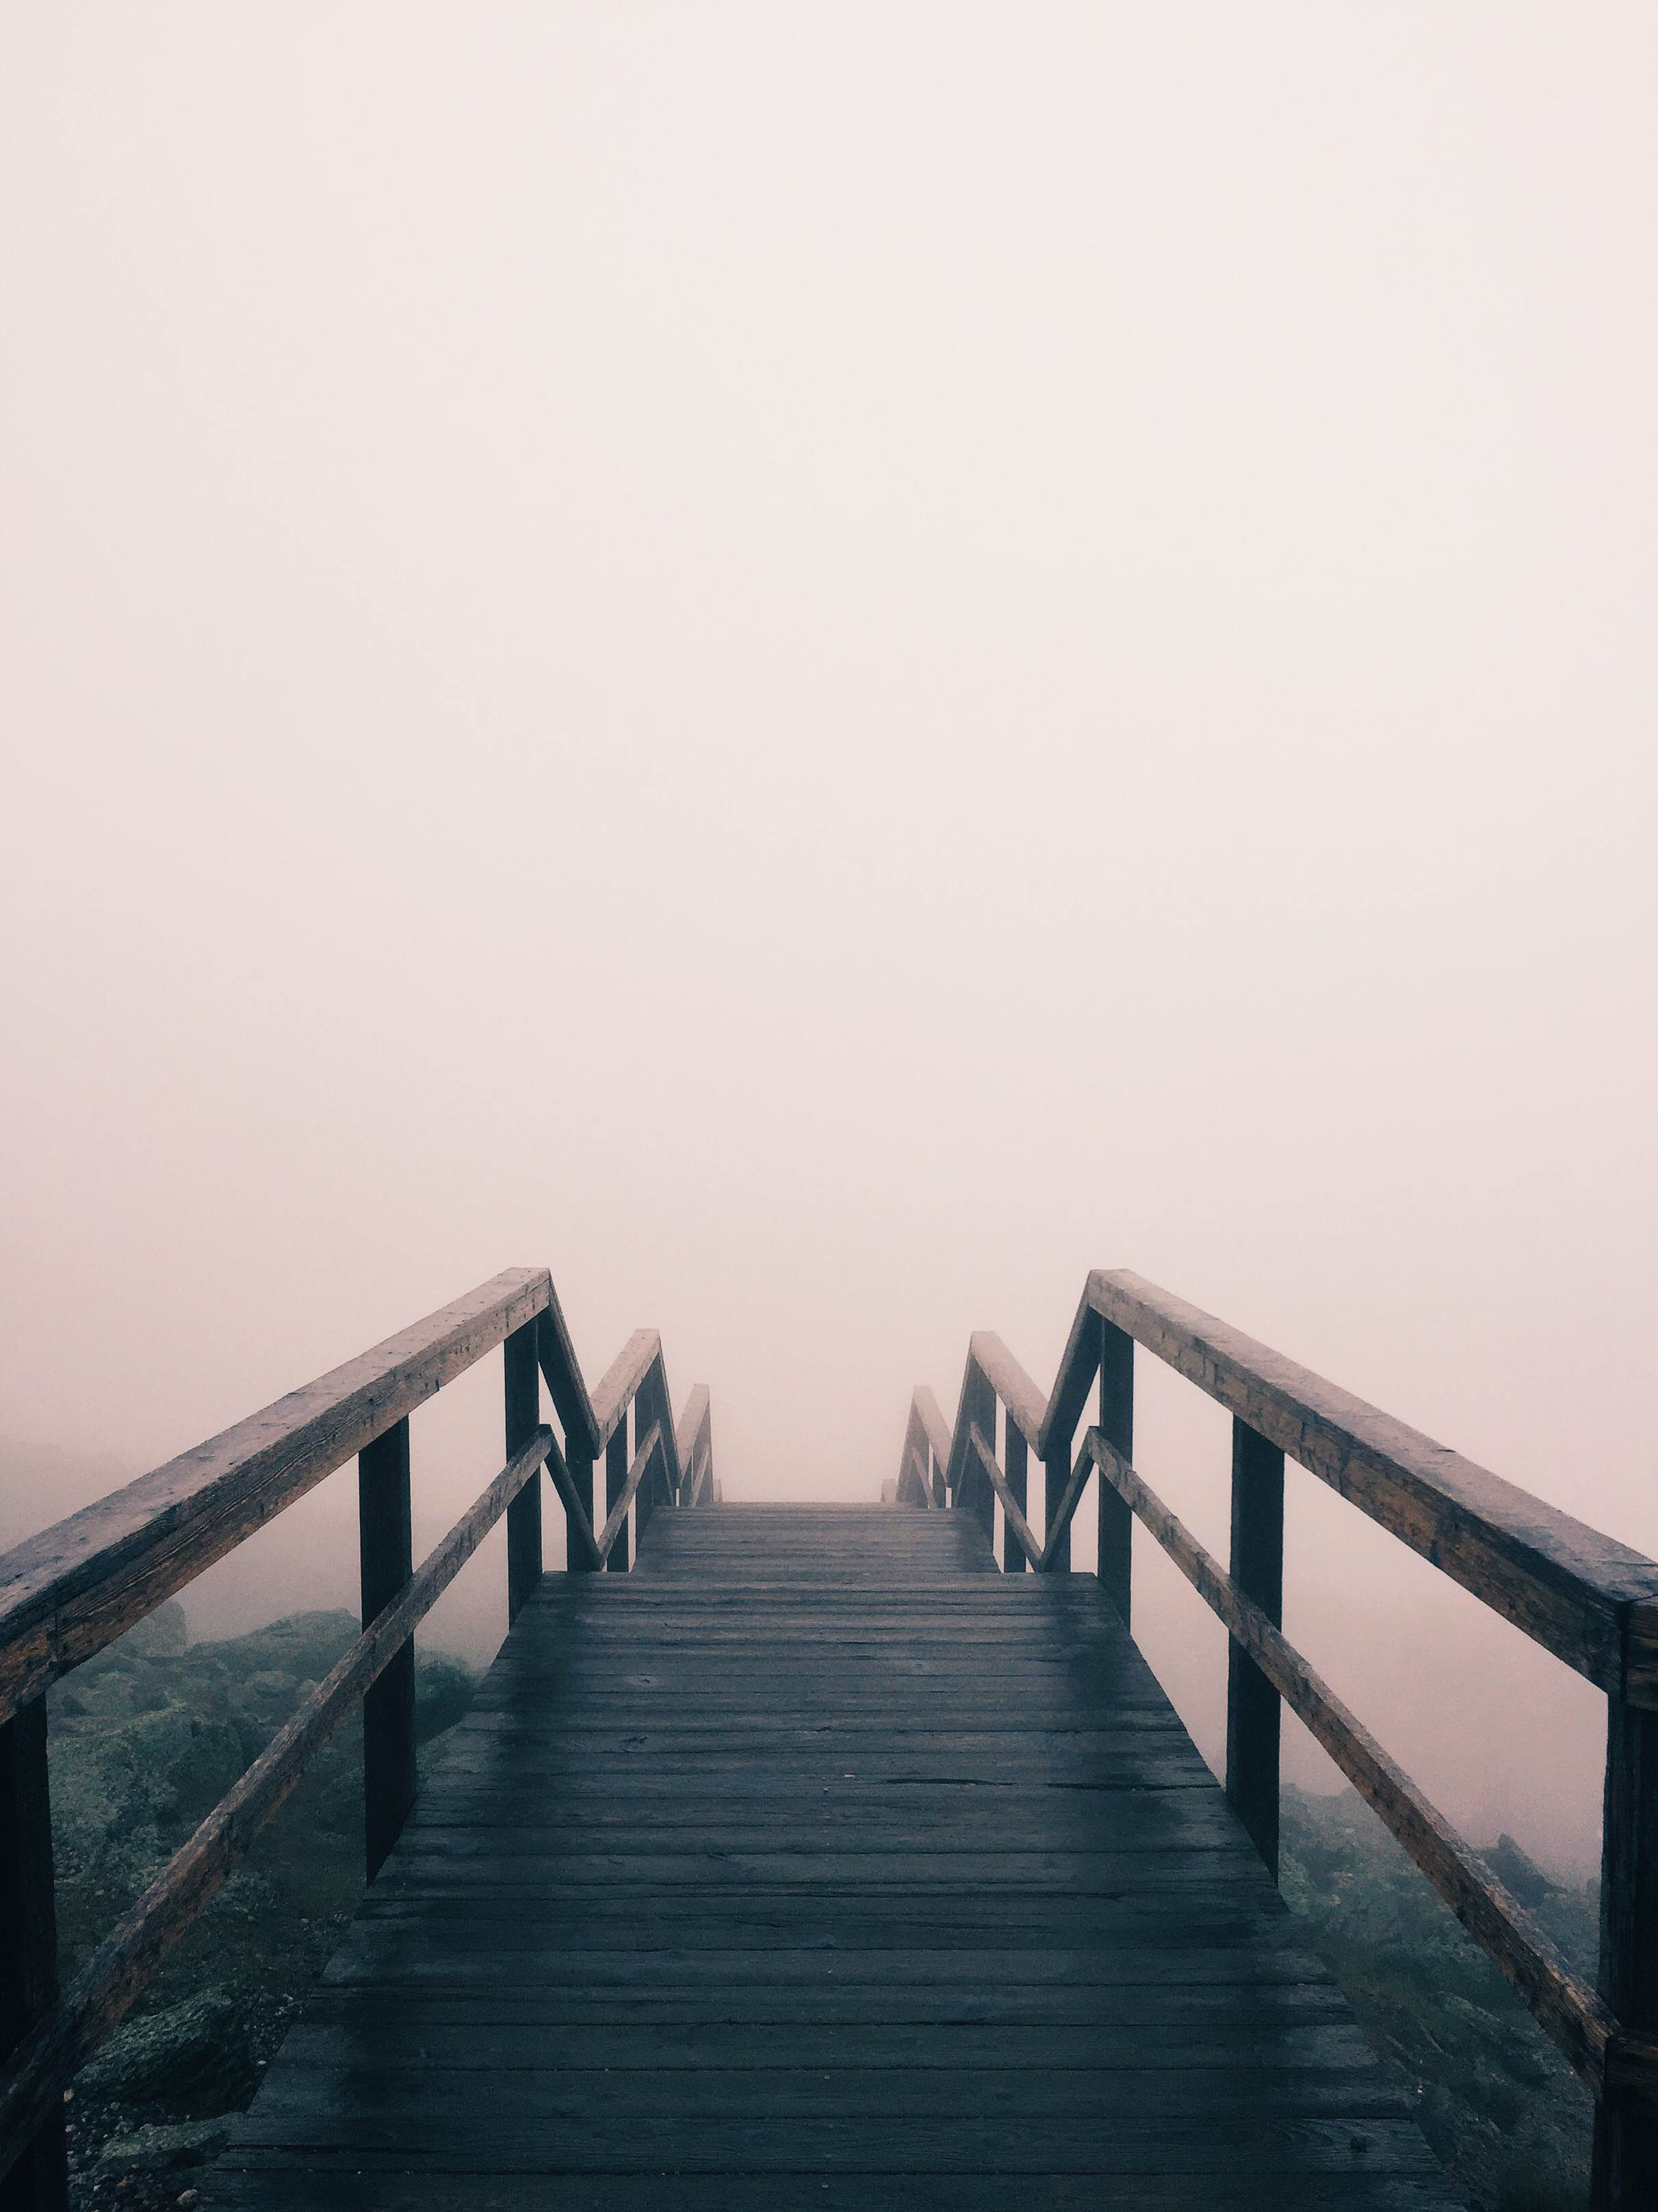 Stairs lead down a rocky hillside and disappear into fog